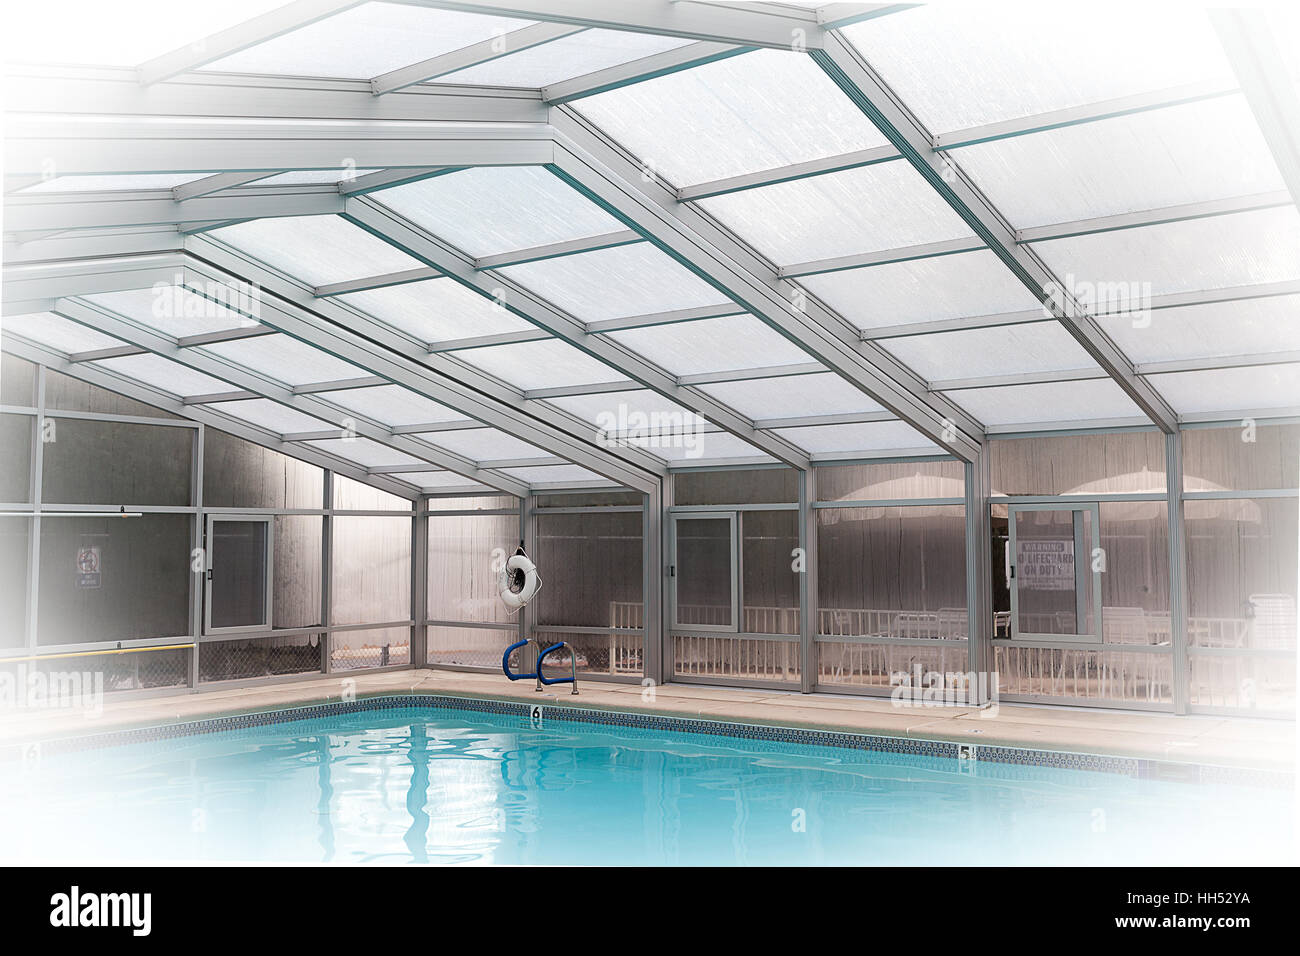 Enclosed covered swimming pool Stock Photo: 131033822 - Alamy